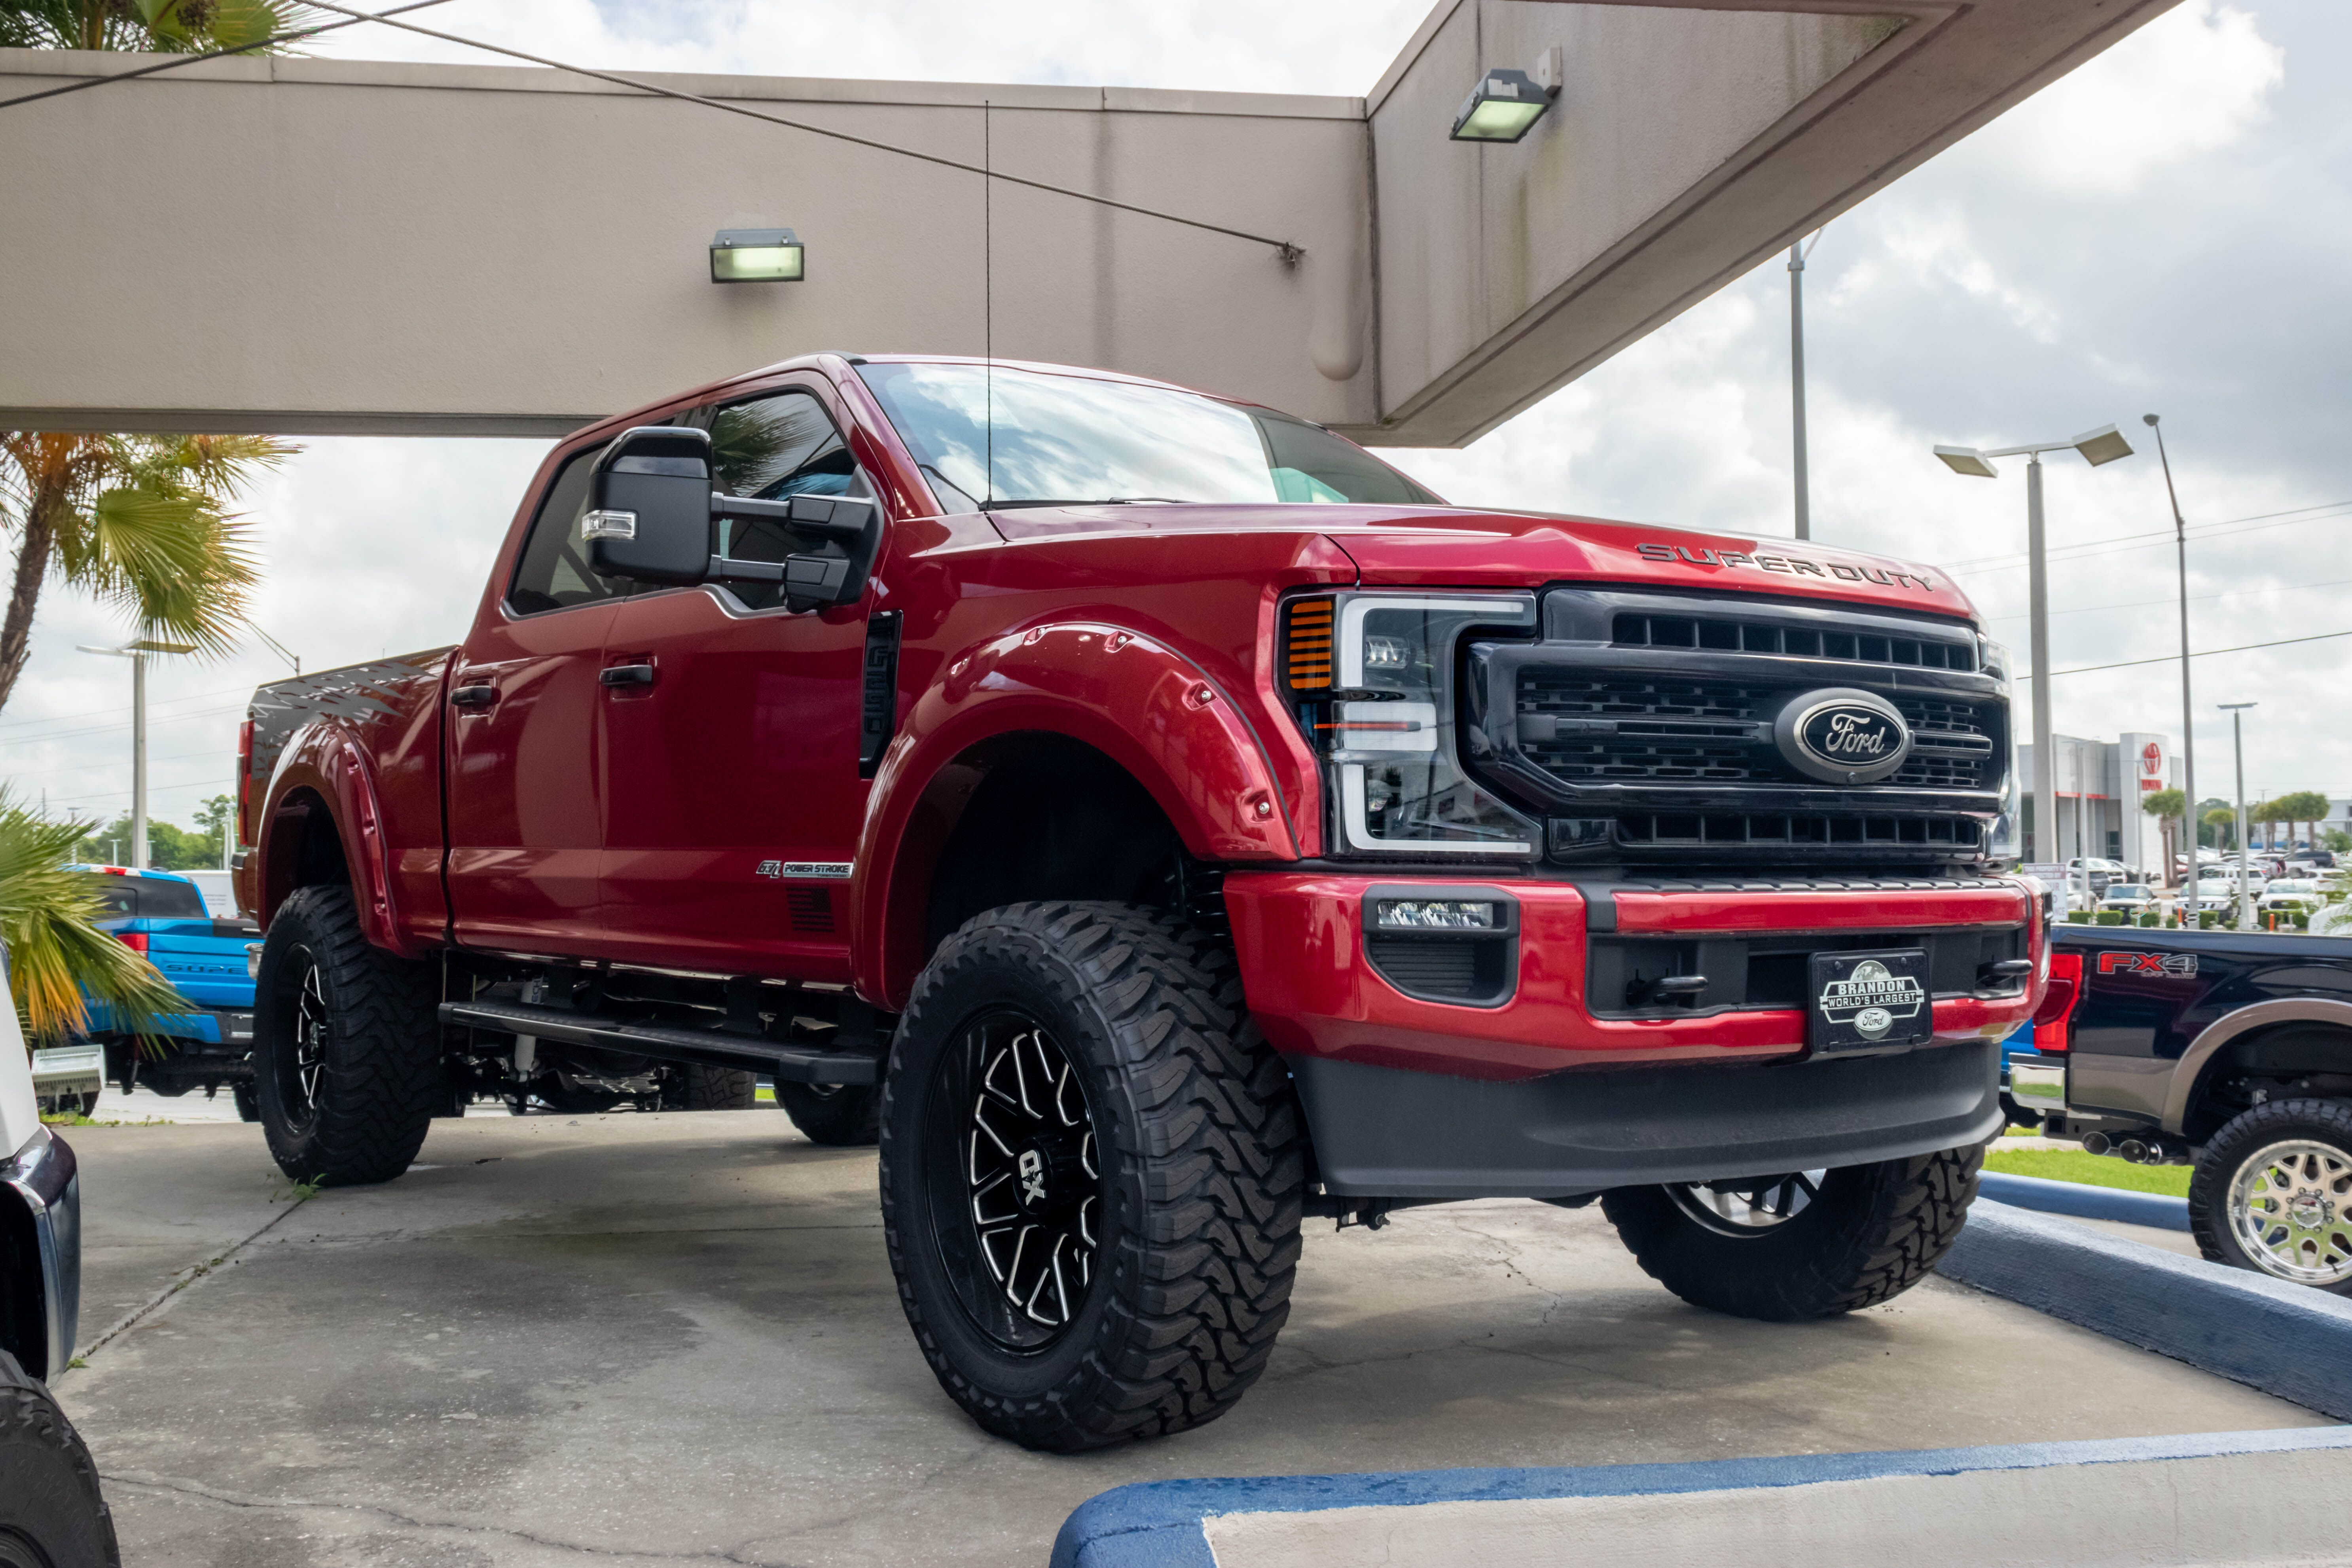 side view of a red Ford F-150